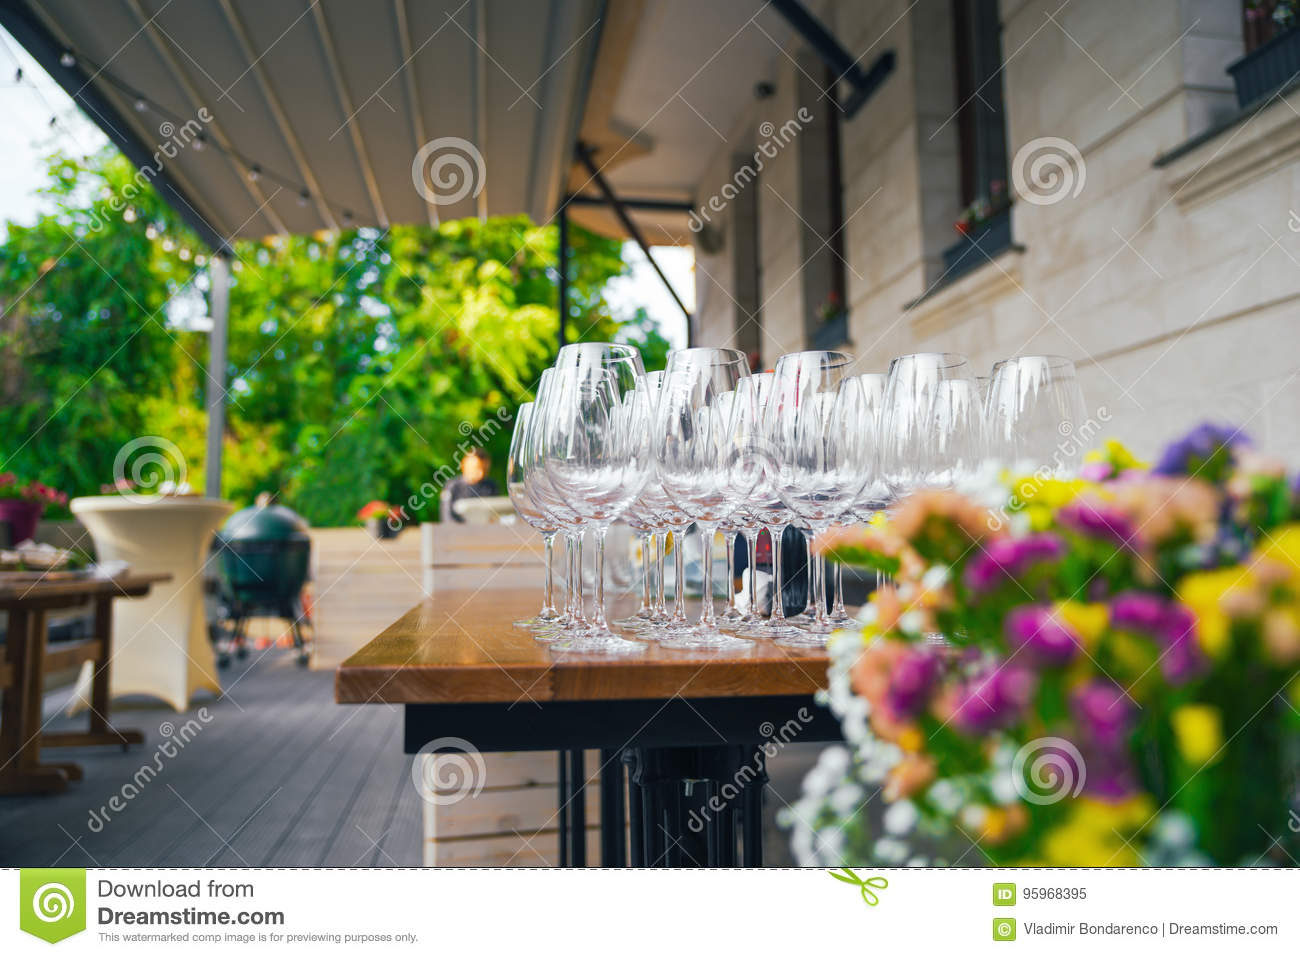 Preparing a terrace for the event. On the summer terrace there are tables with glasses. The concept of a party, wedding or birthda